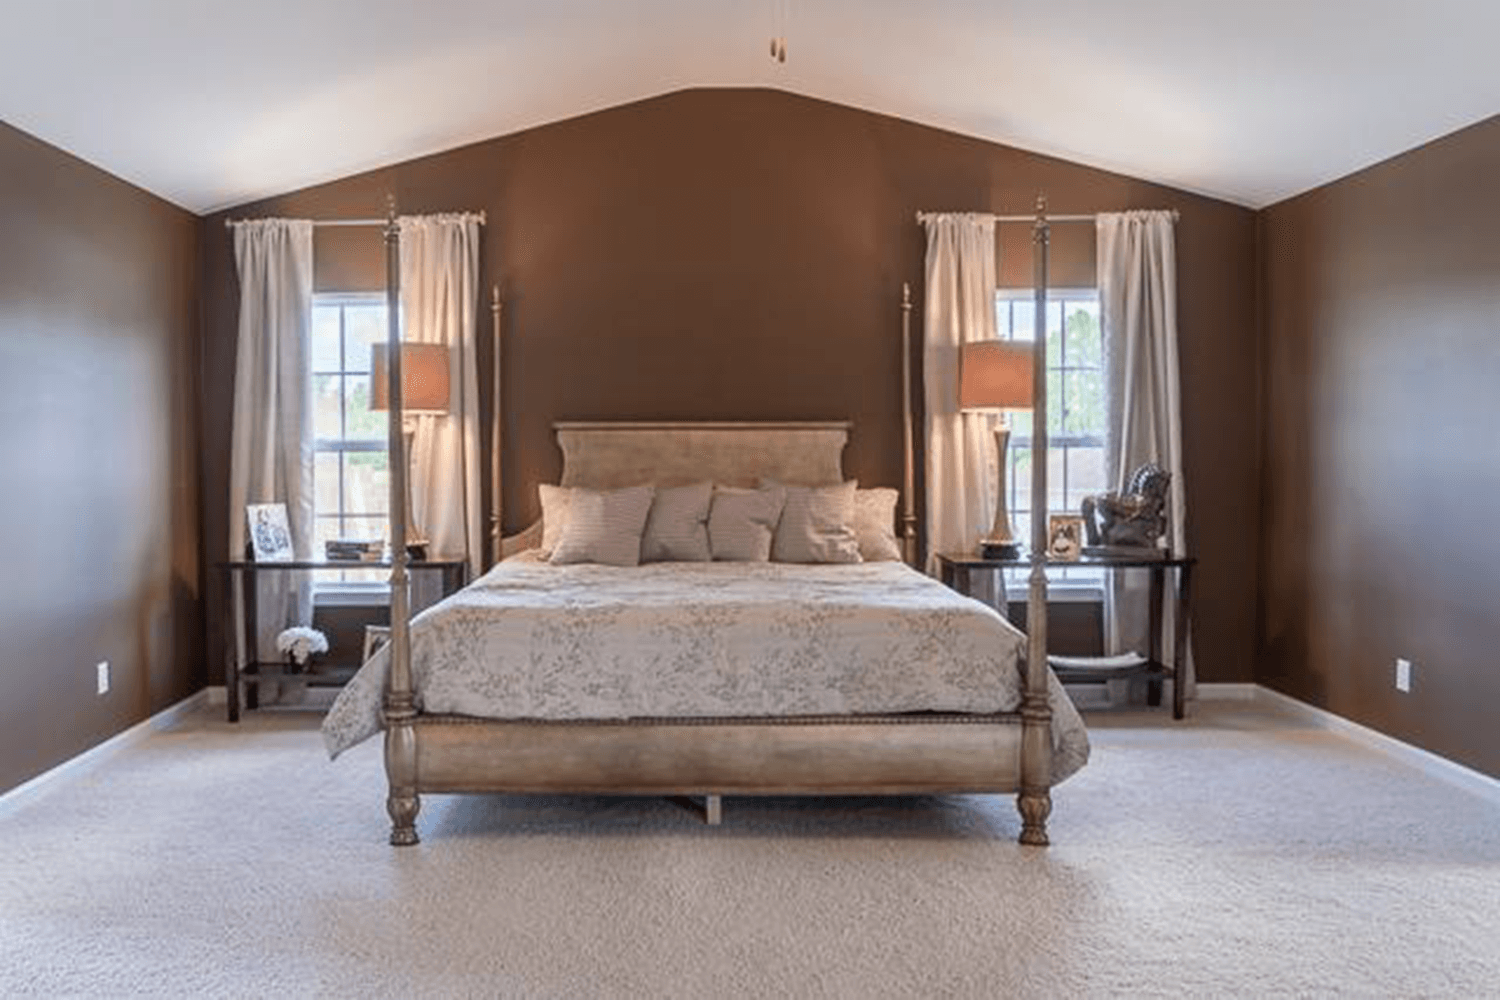 Bedroom featured in The Savannah (Build on your lot) By Lamar Smith Homes in Savannah, GA